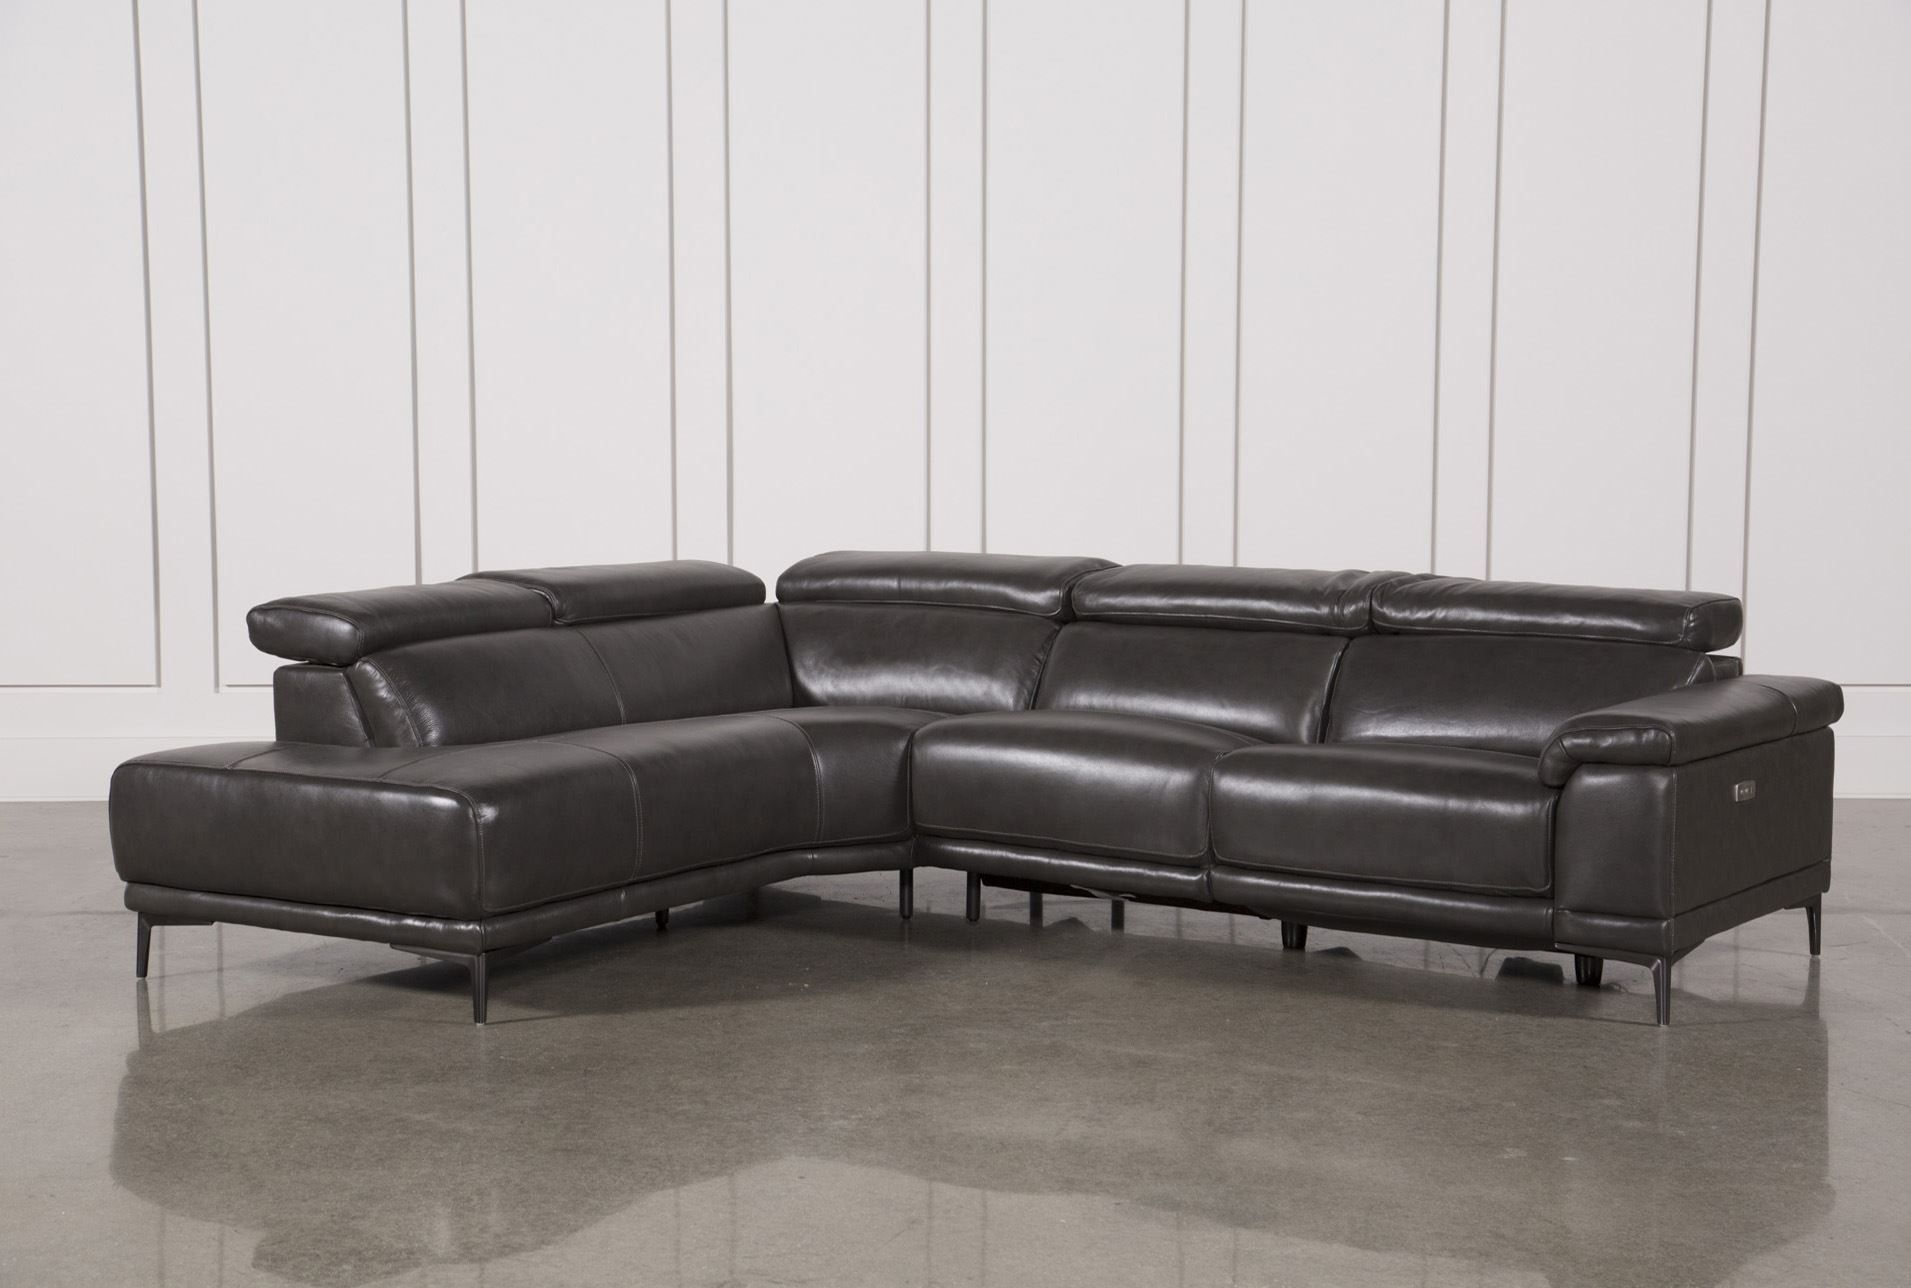 Tatum Dark Grey 2 Piece Sectional W/laf Chaise | Pinterest throughout Tenny Cognac 2 Piece Right Facing Chaise Sectionals With 2 Headrest (Image 24 of 30)